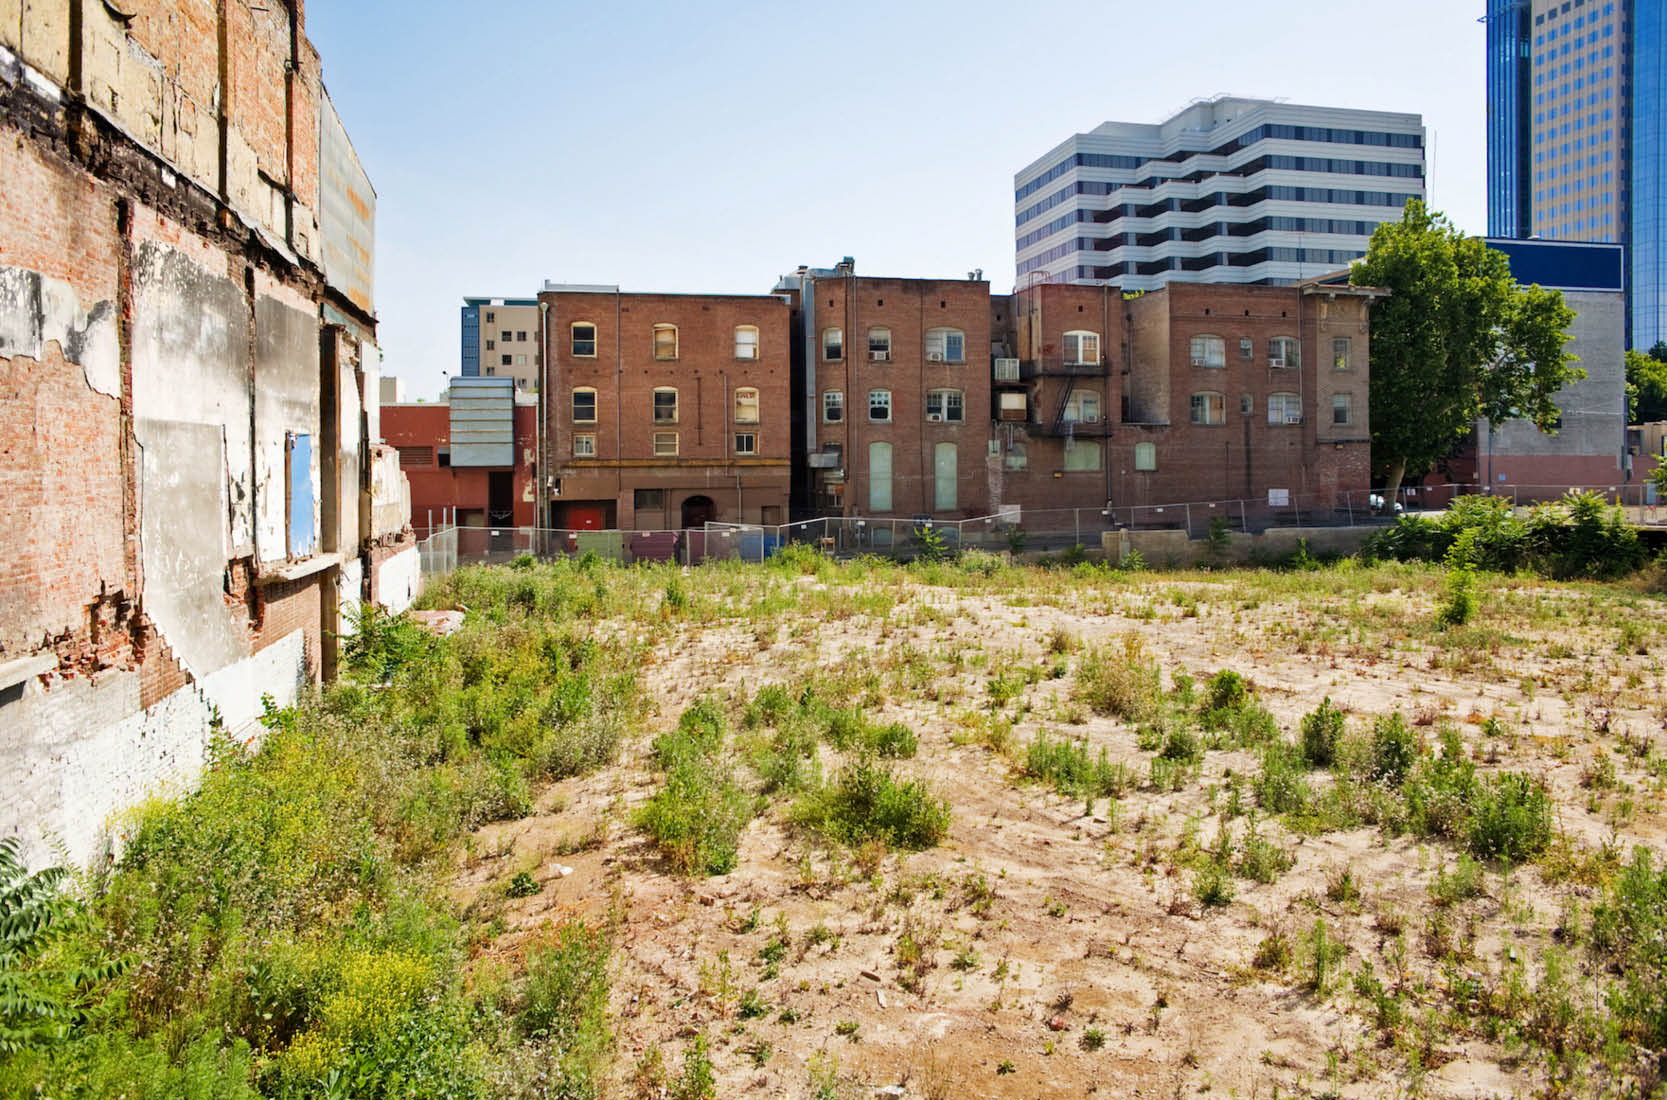 Decaying buildings and patchy grass.